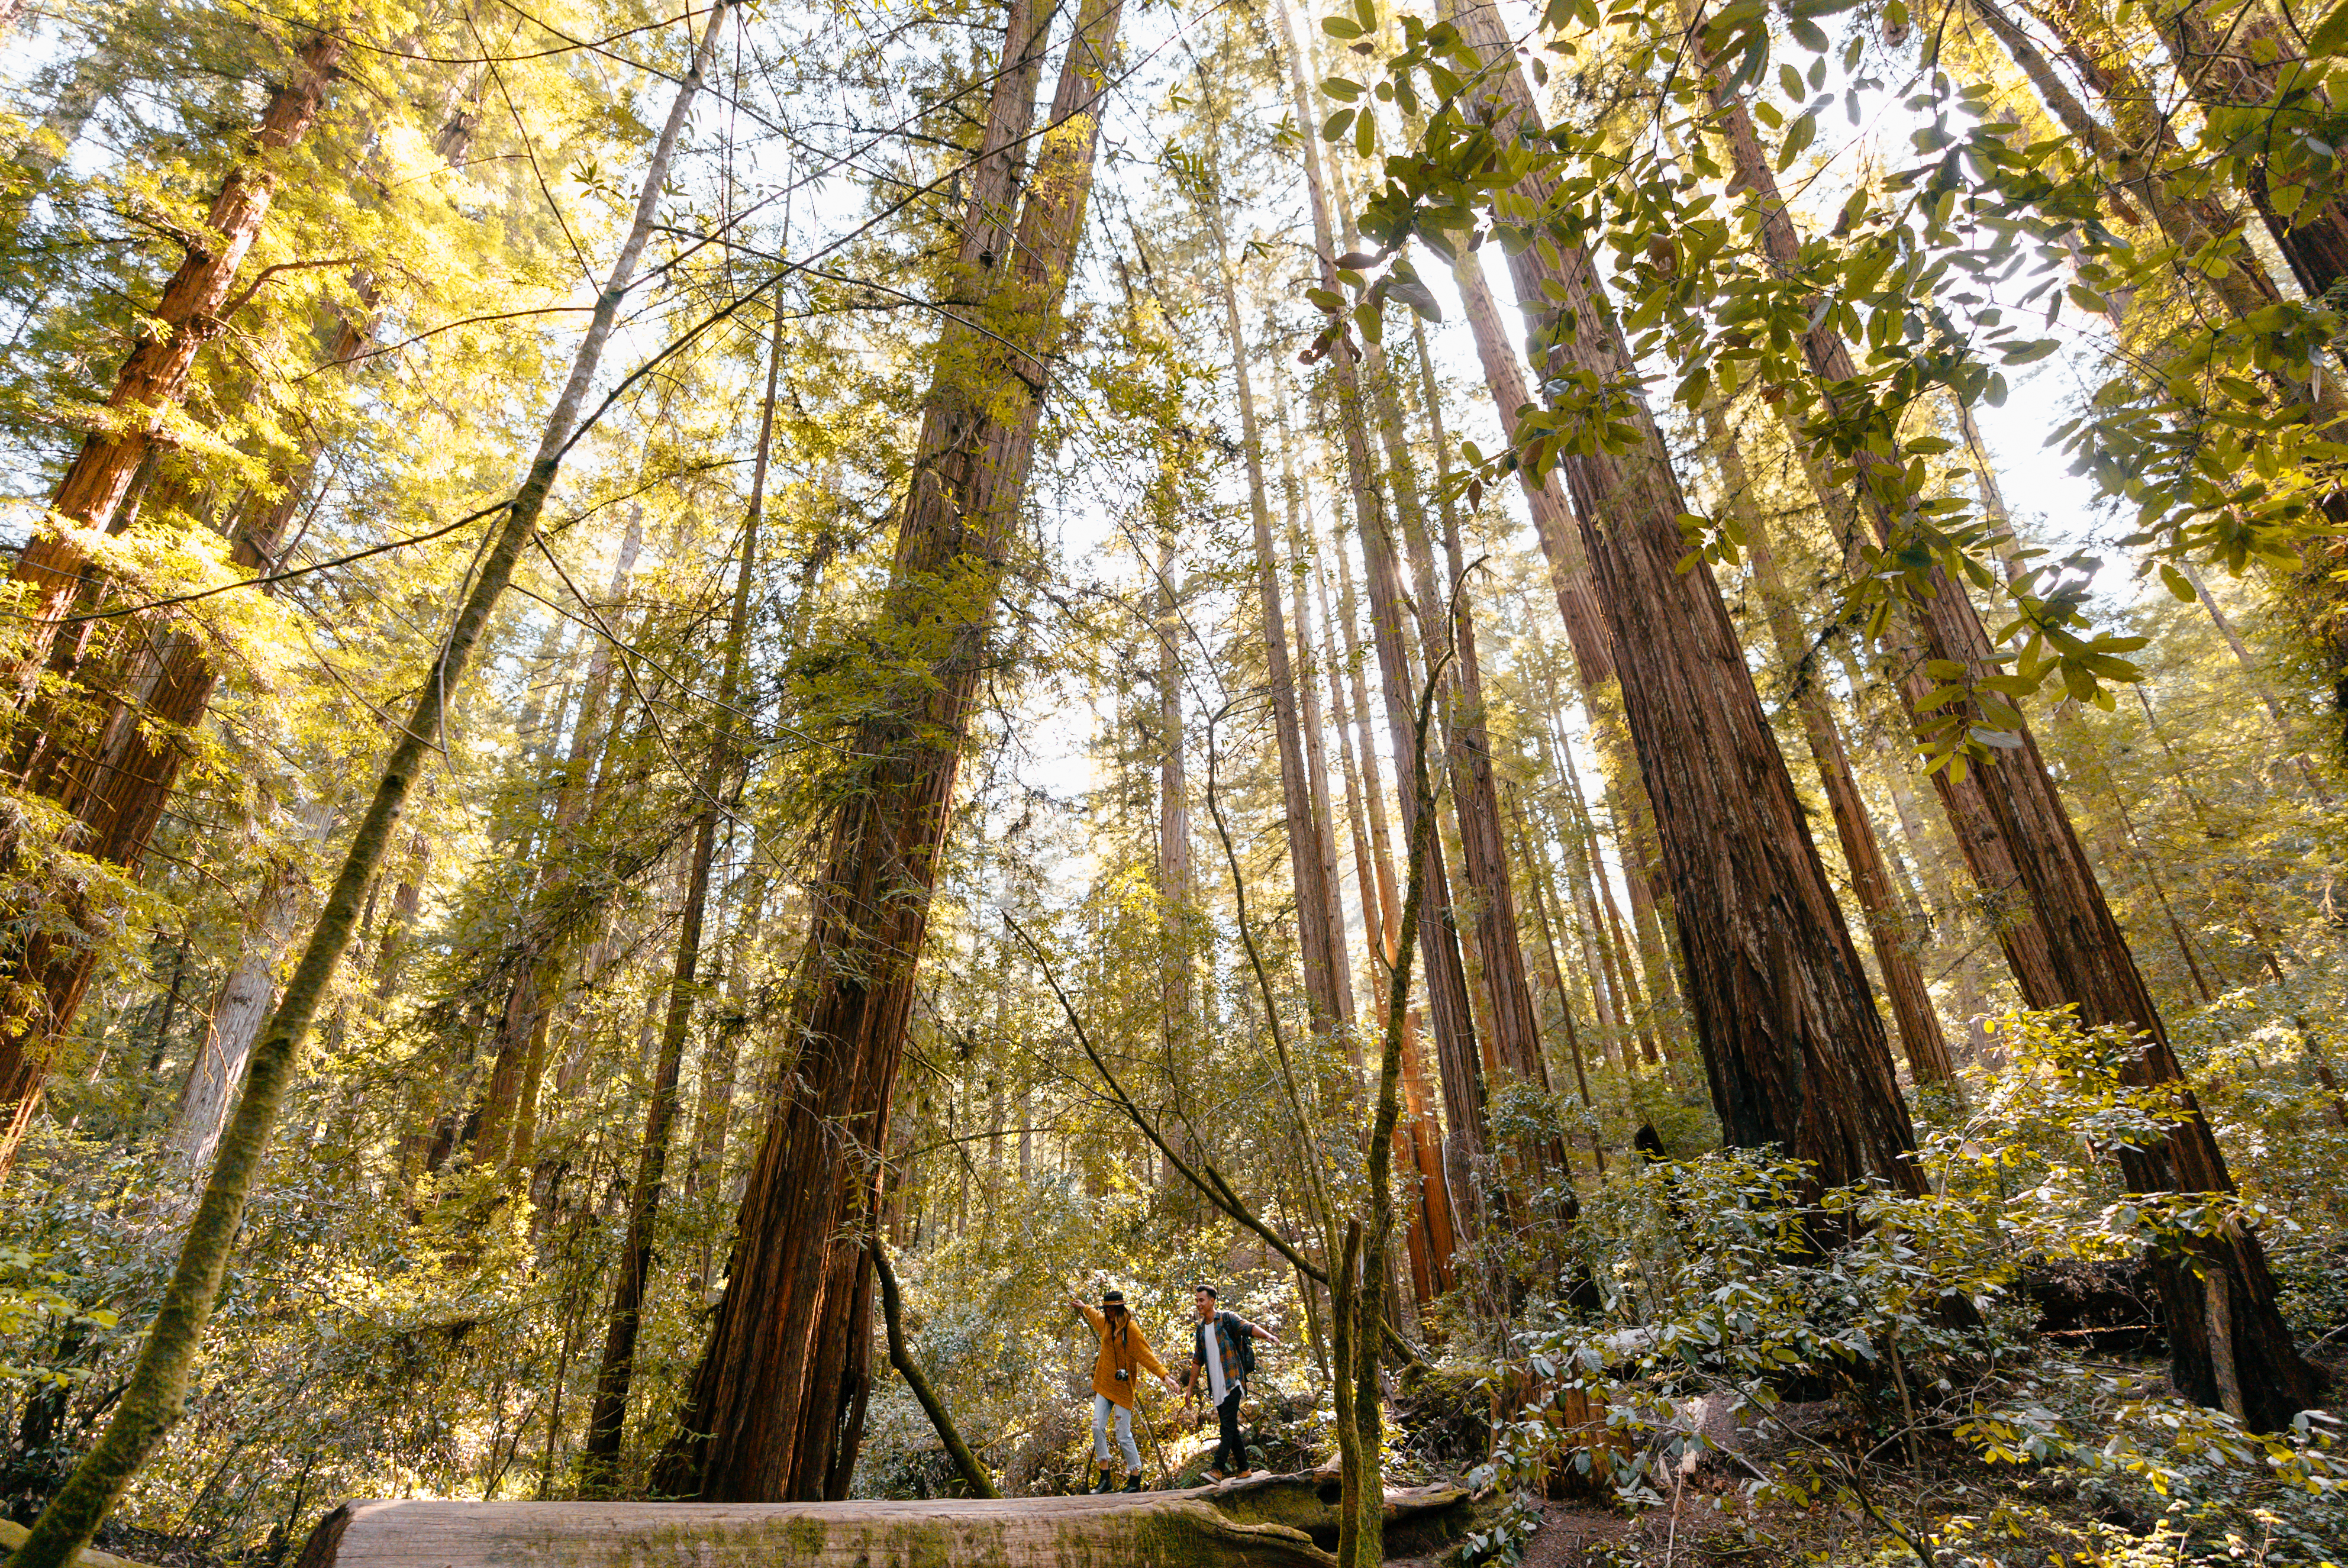 Forest Bathing in Armstrong Redwoods State Natural Reserve, Sonoma County, California